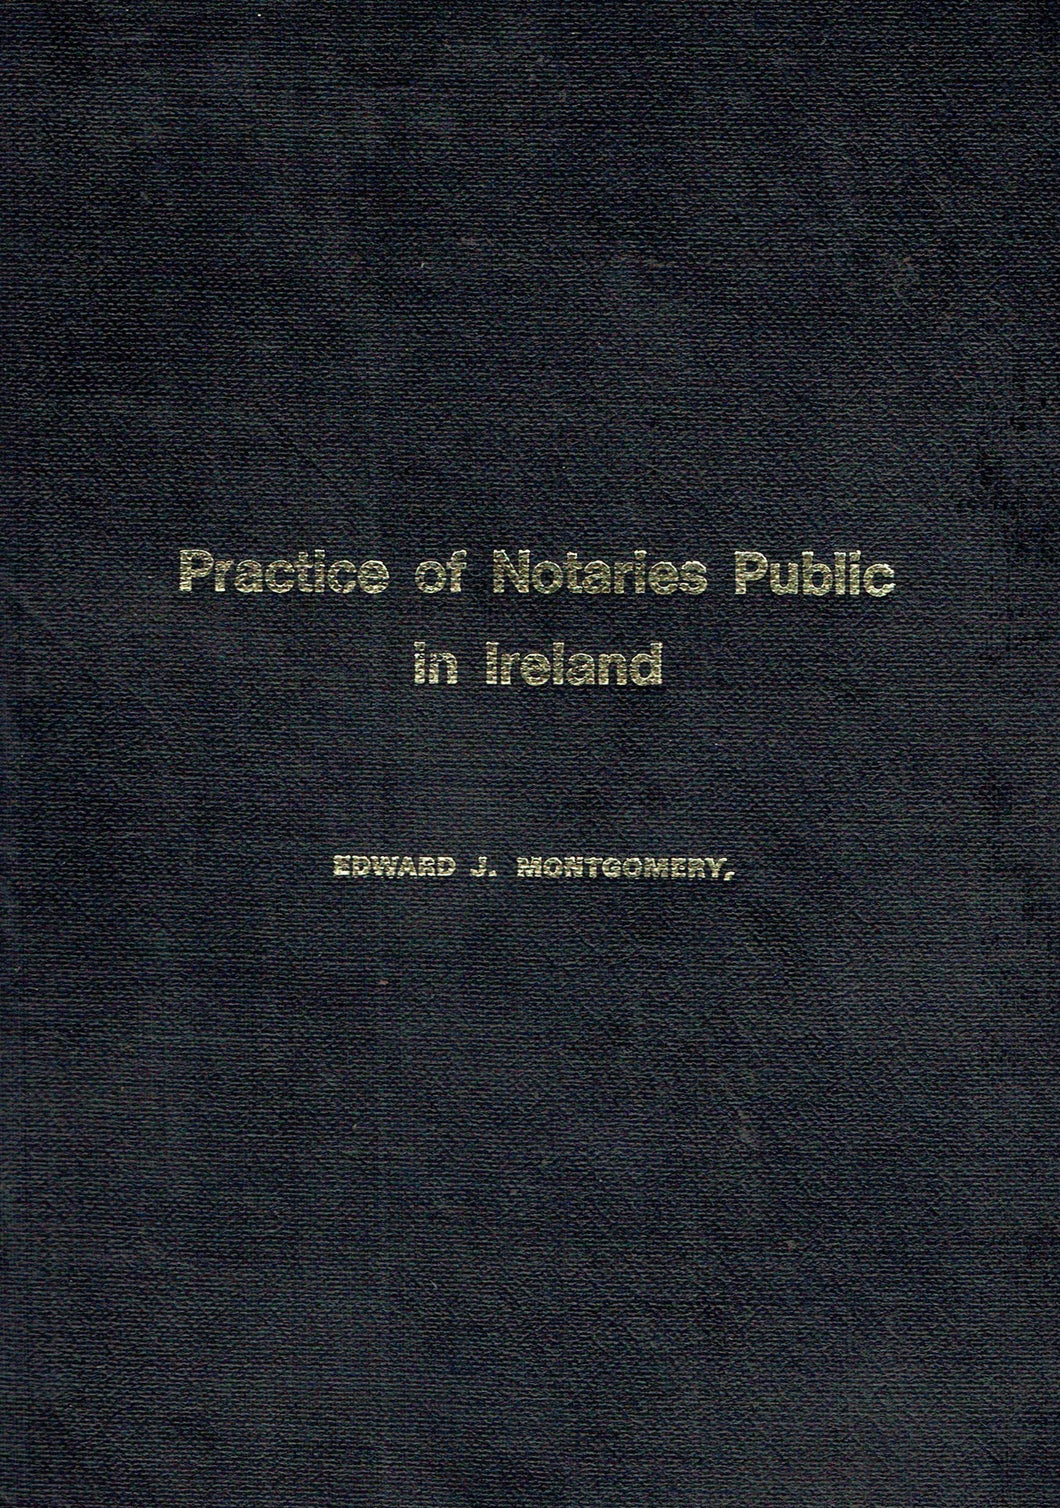 Manual on the Practice of Notaries Public in Ireland